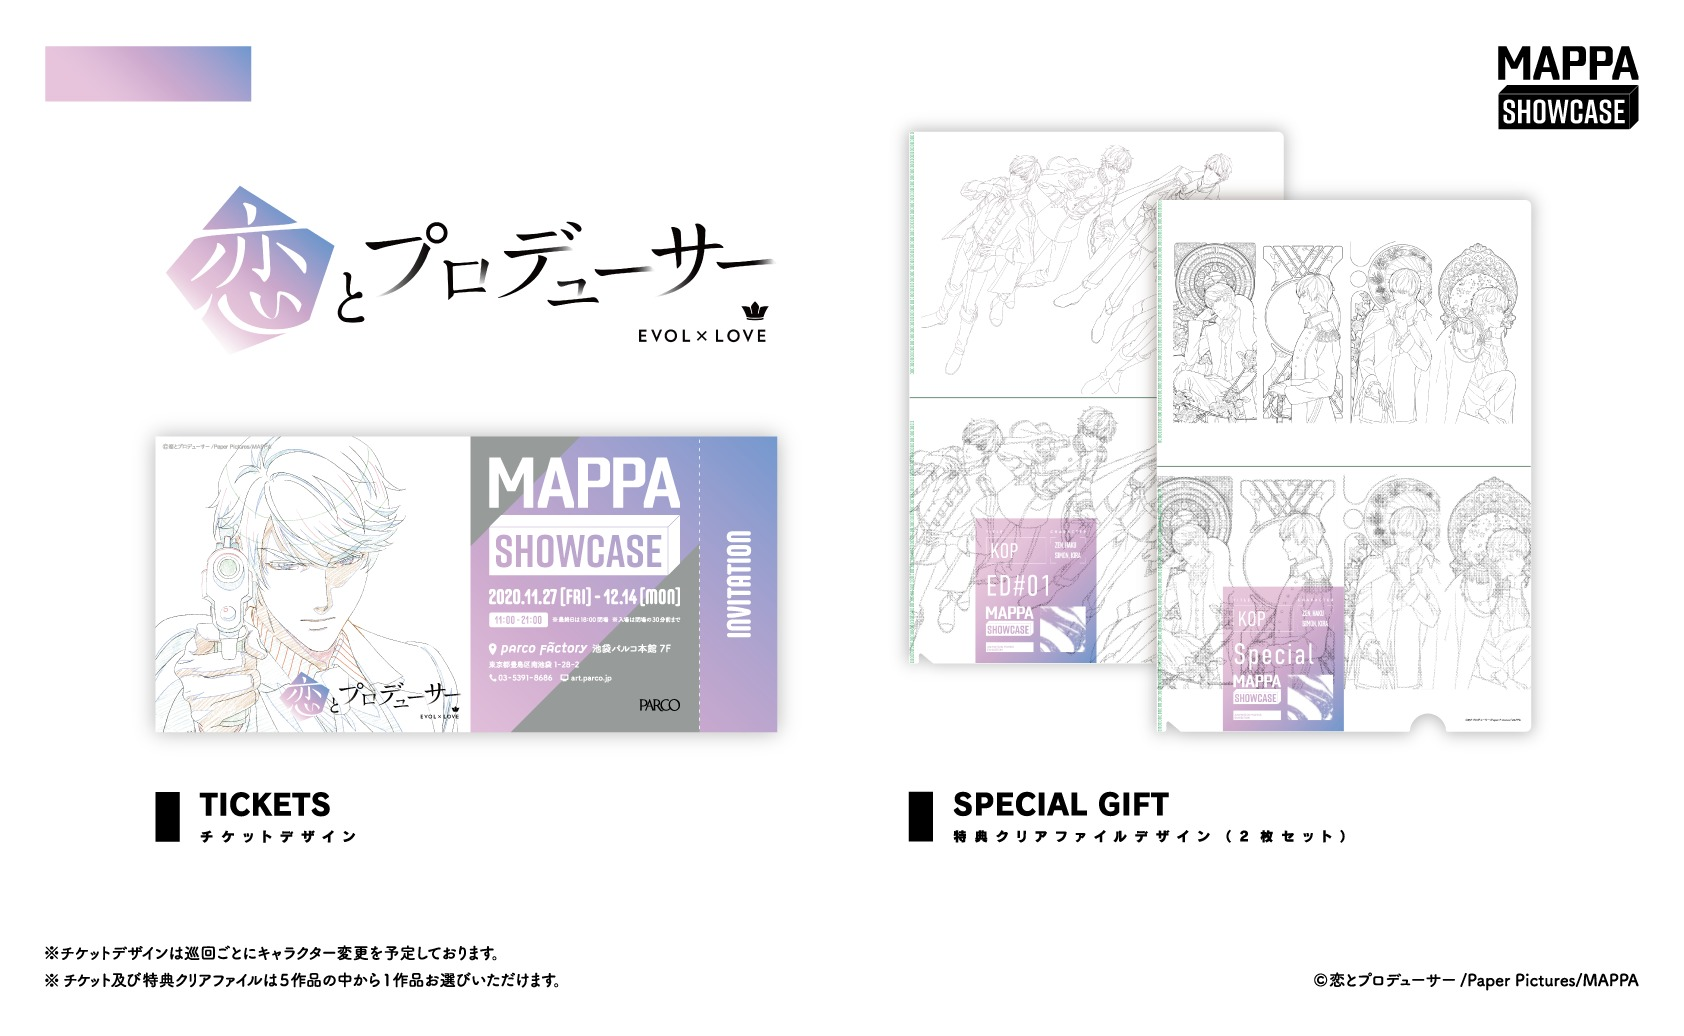 (C)恋とプロデューサー/Paper Pictures/MAPPA